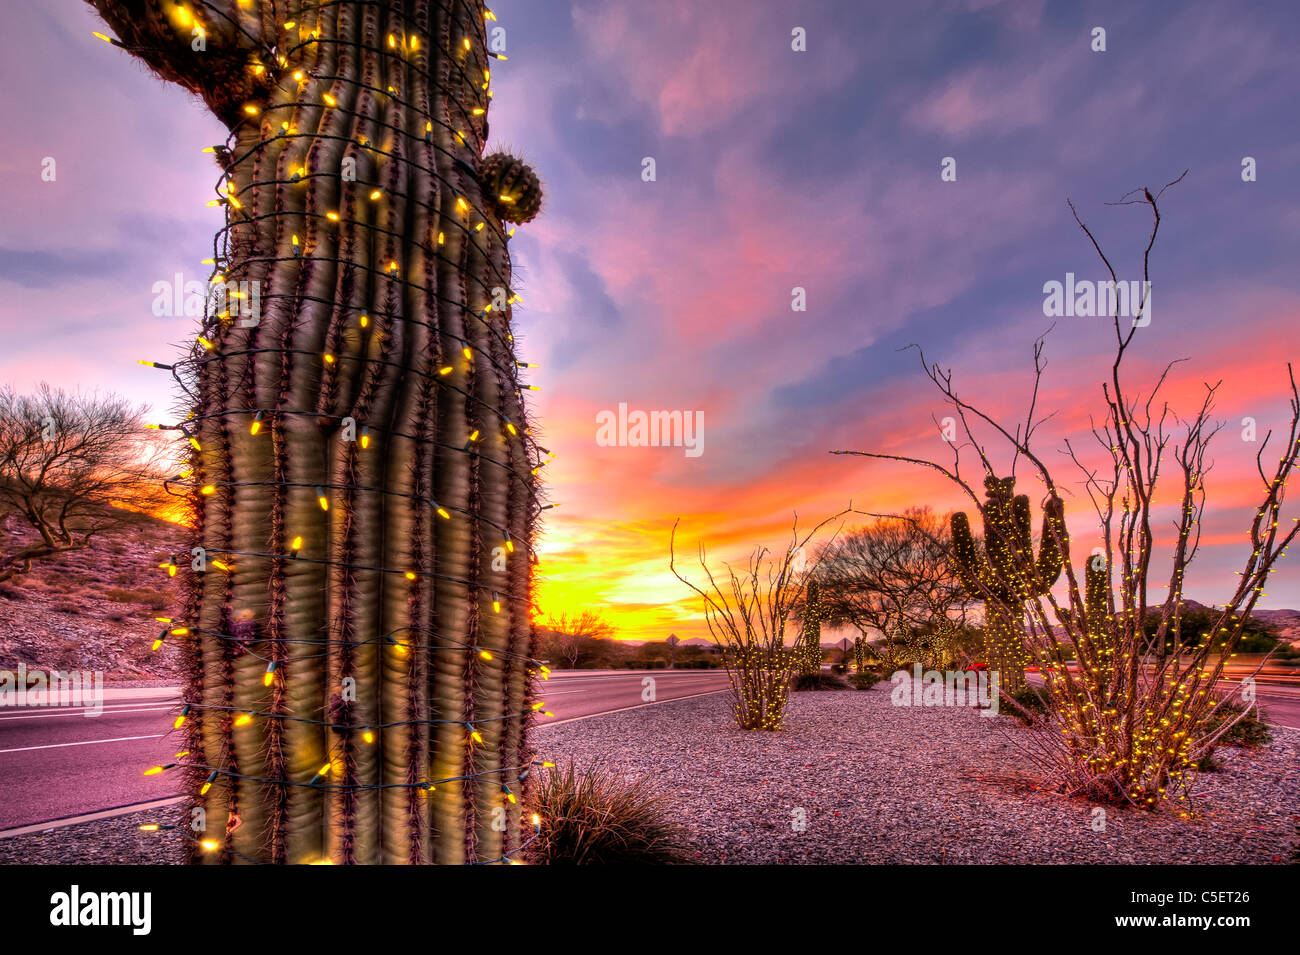 these huge saguaro cactus have been covered in christmas lights for the christmas season in phoenix